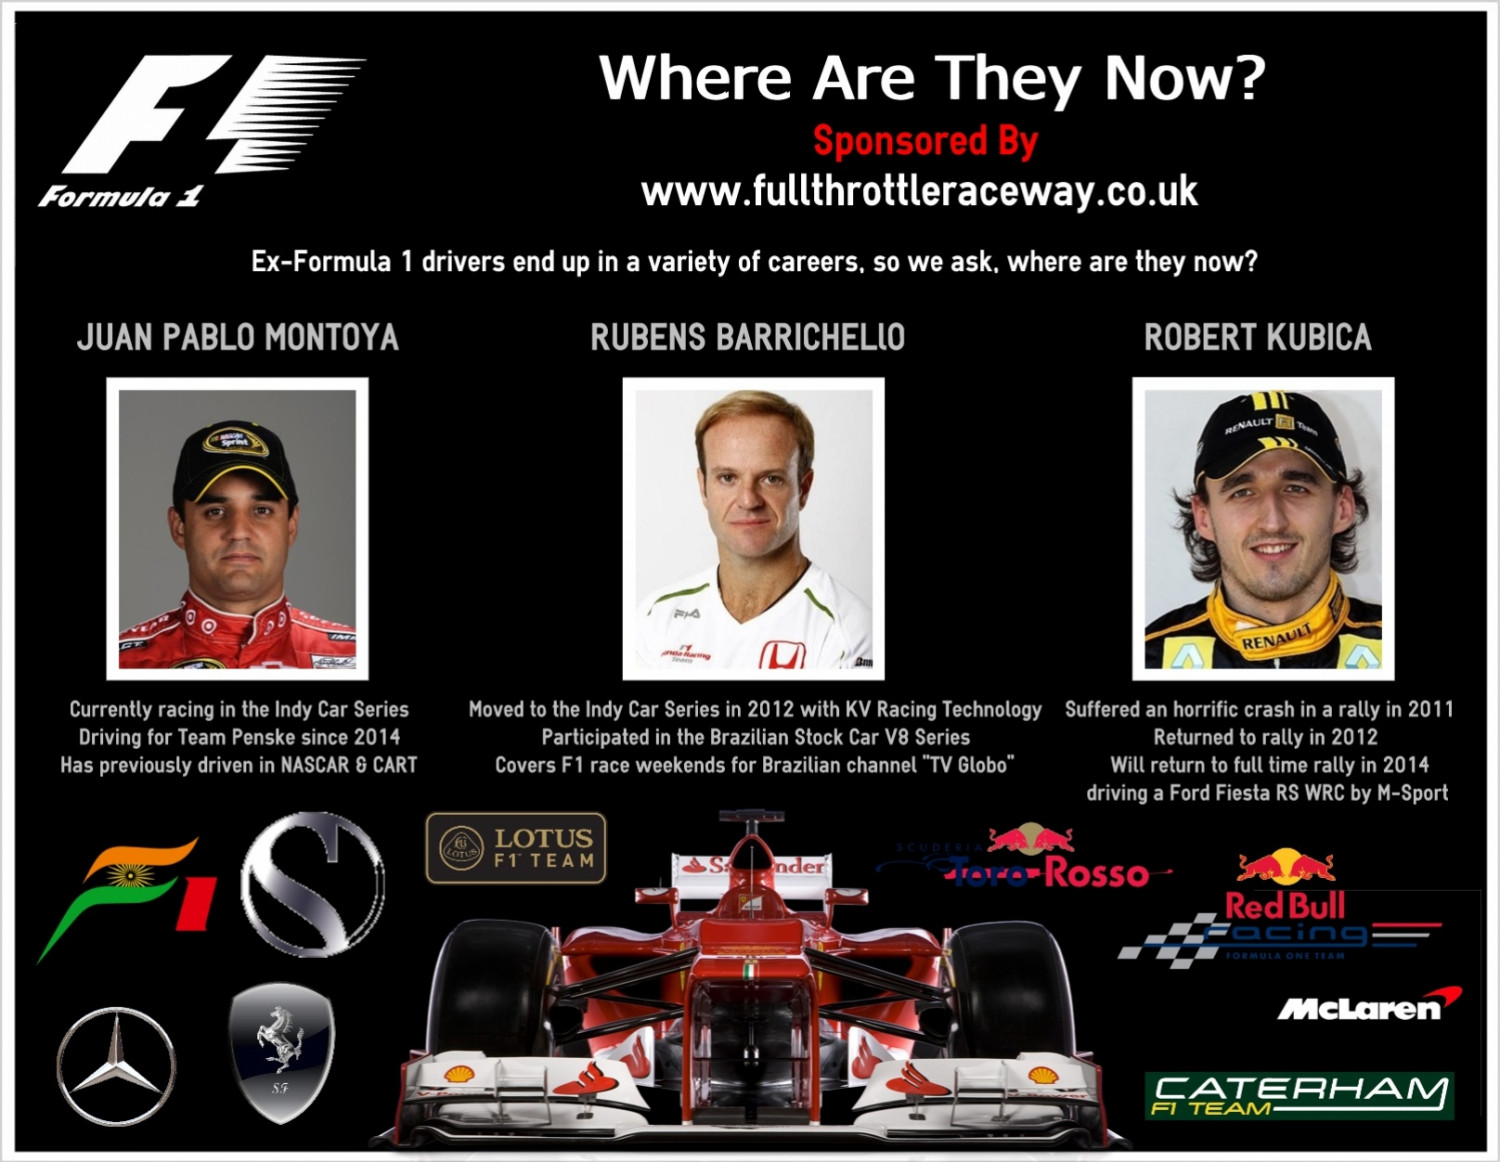 Where Are They Now? Infographic